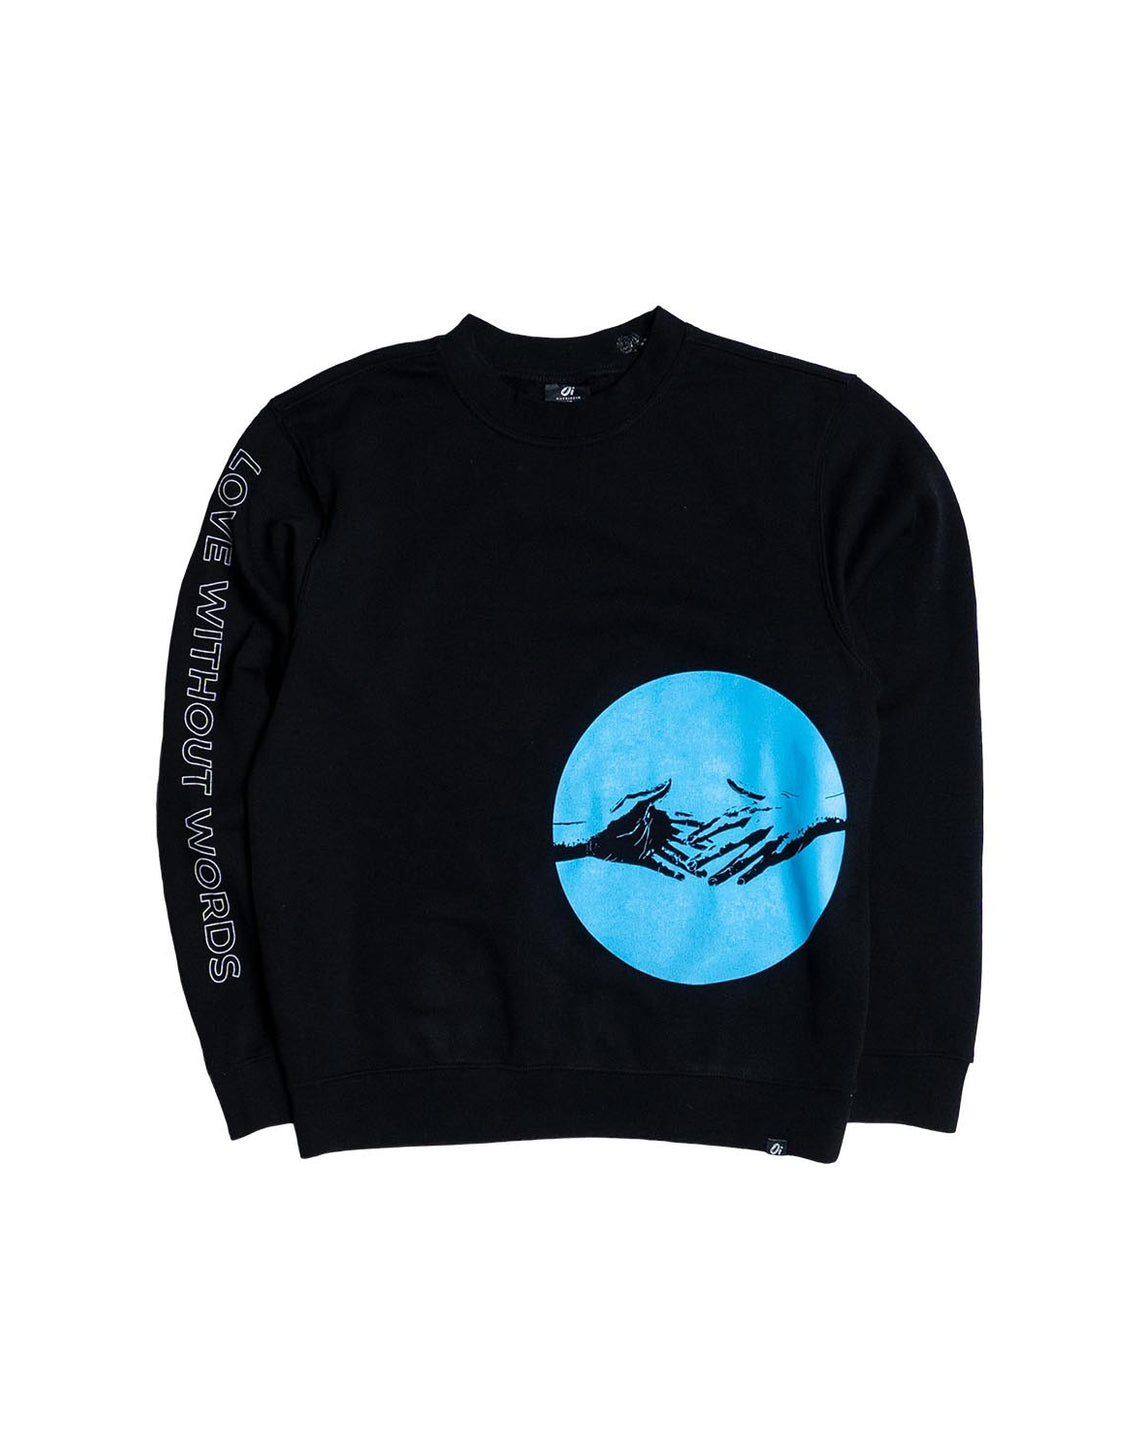 Love Without Words Black Sweater - OutsideIn